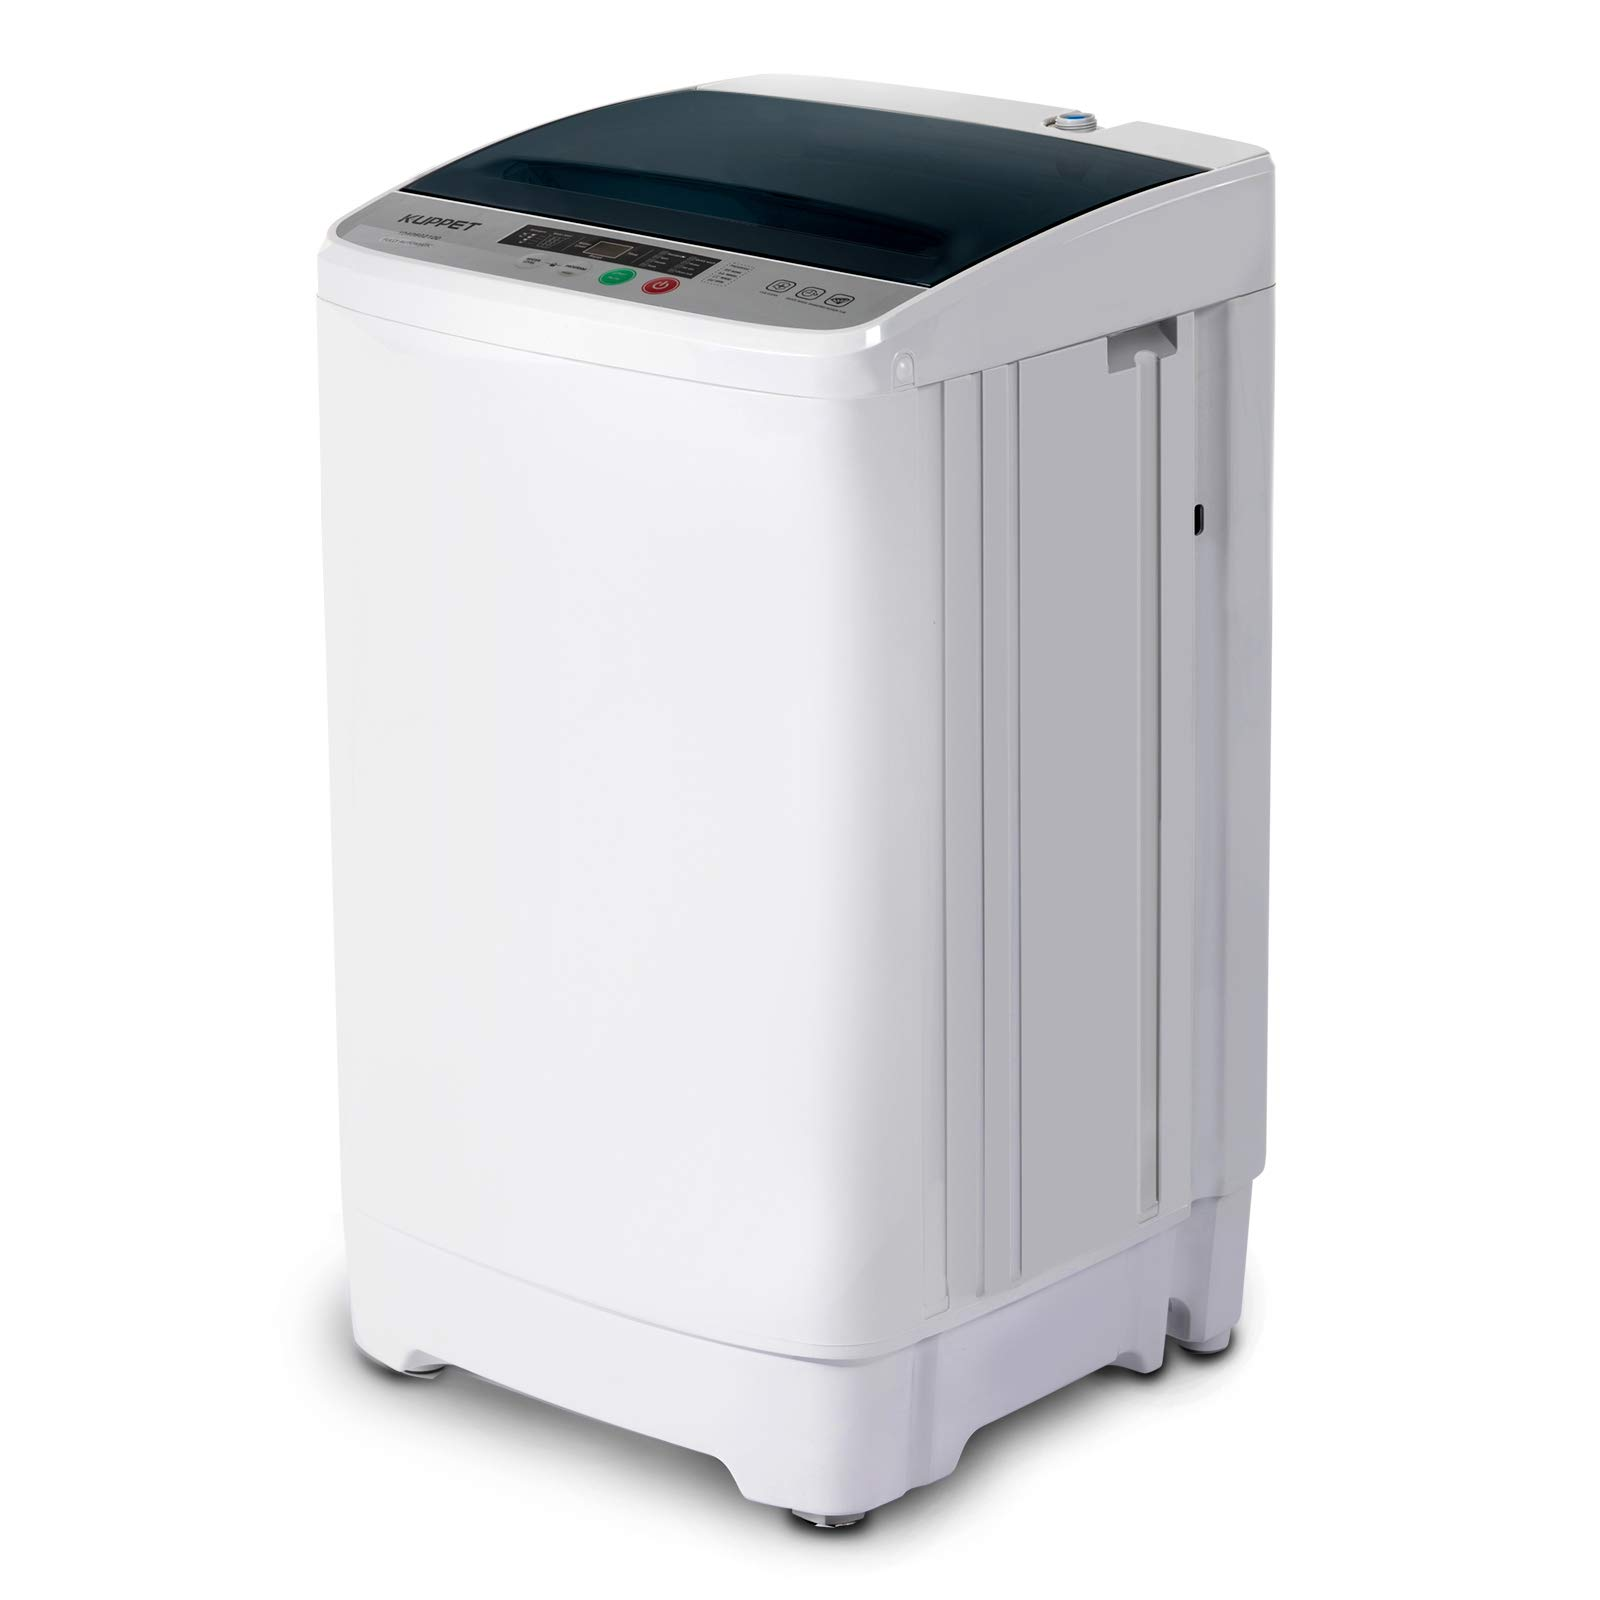 Full-Automatic Portable Washing Machine, KUPPET Compact Multi-functional Laundry, 8lbs Washer&Spin/Top Load Panel/Child Lock/Mini Washer